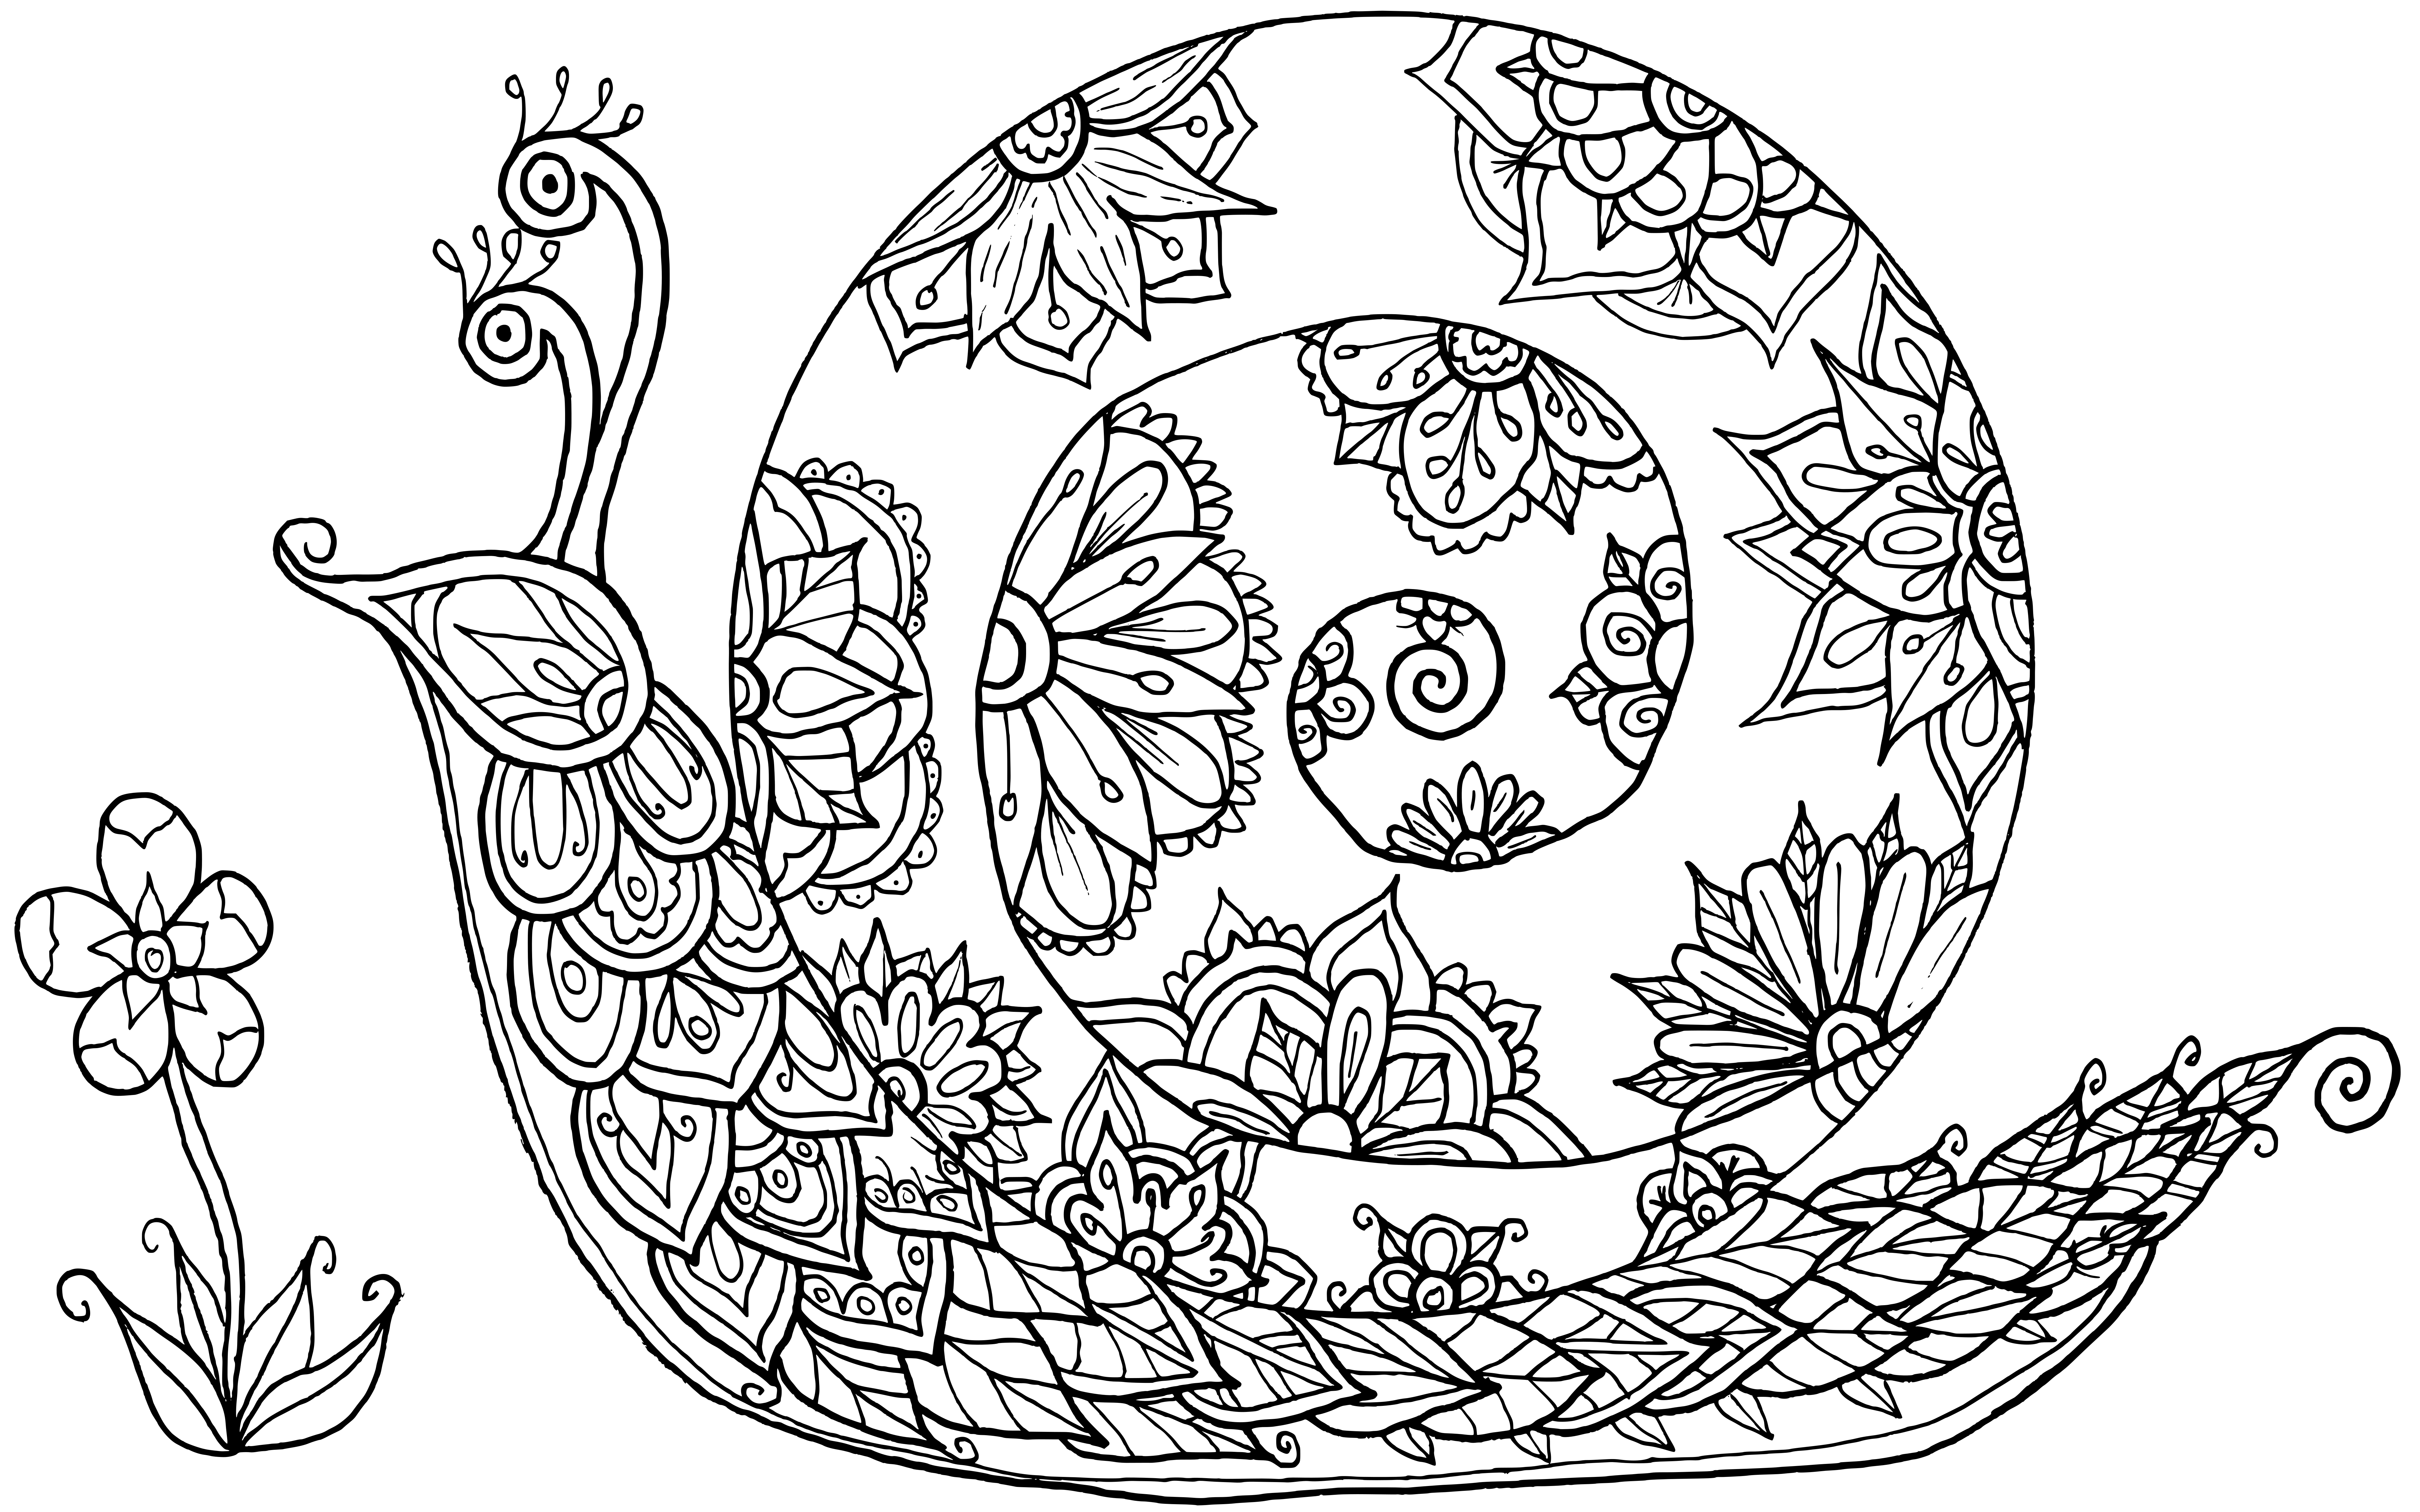 snail coloring page snail coloring page coloring home coloring snail page